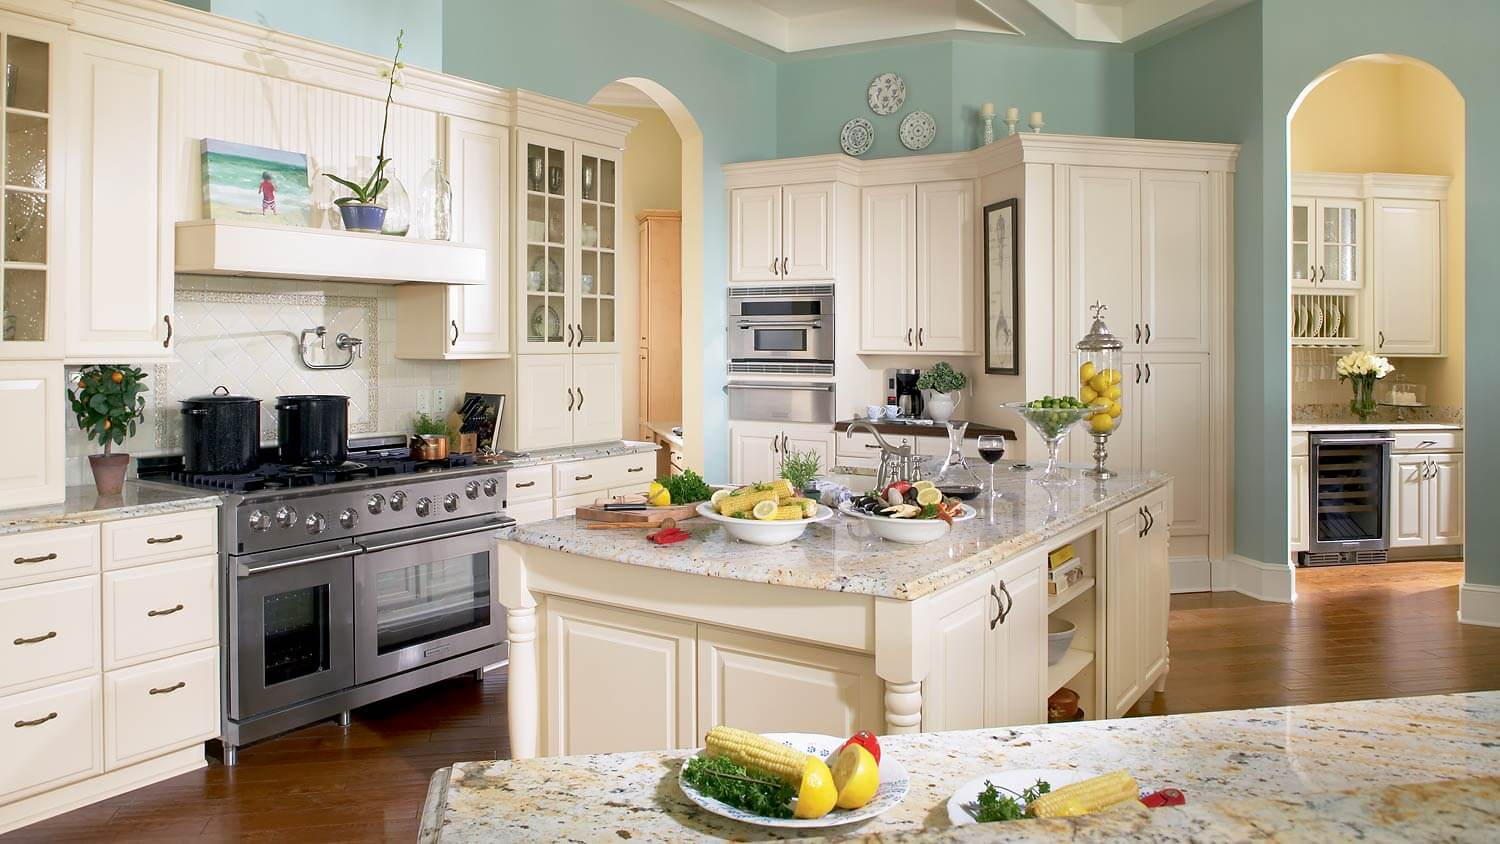 kitchen cabinets tucson islands lowes the ultimate cook's kitchen: form, function and aesthetics